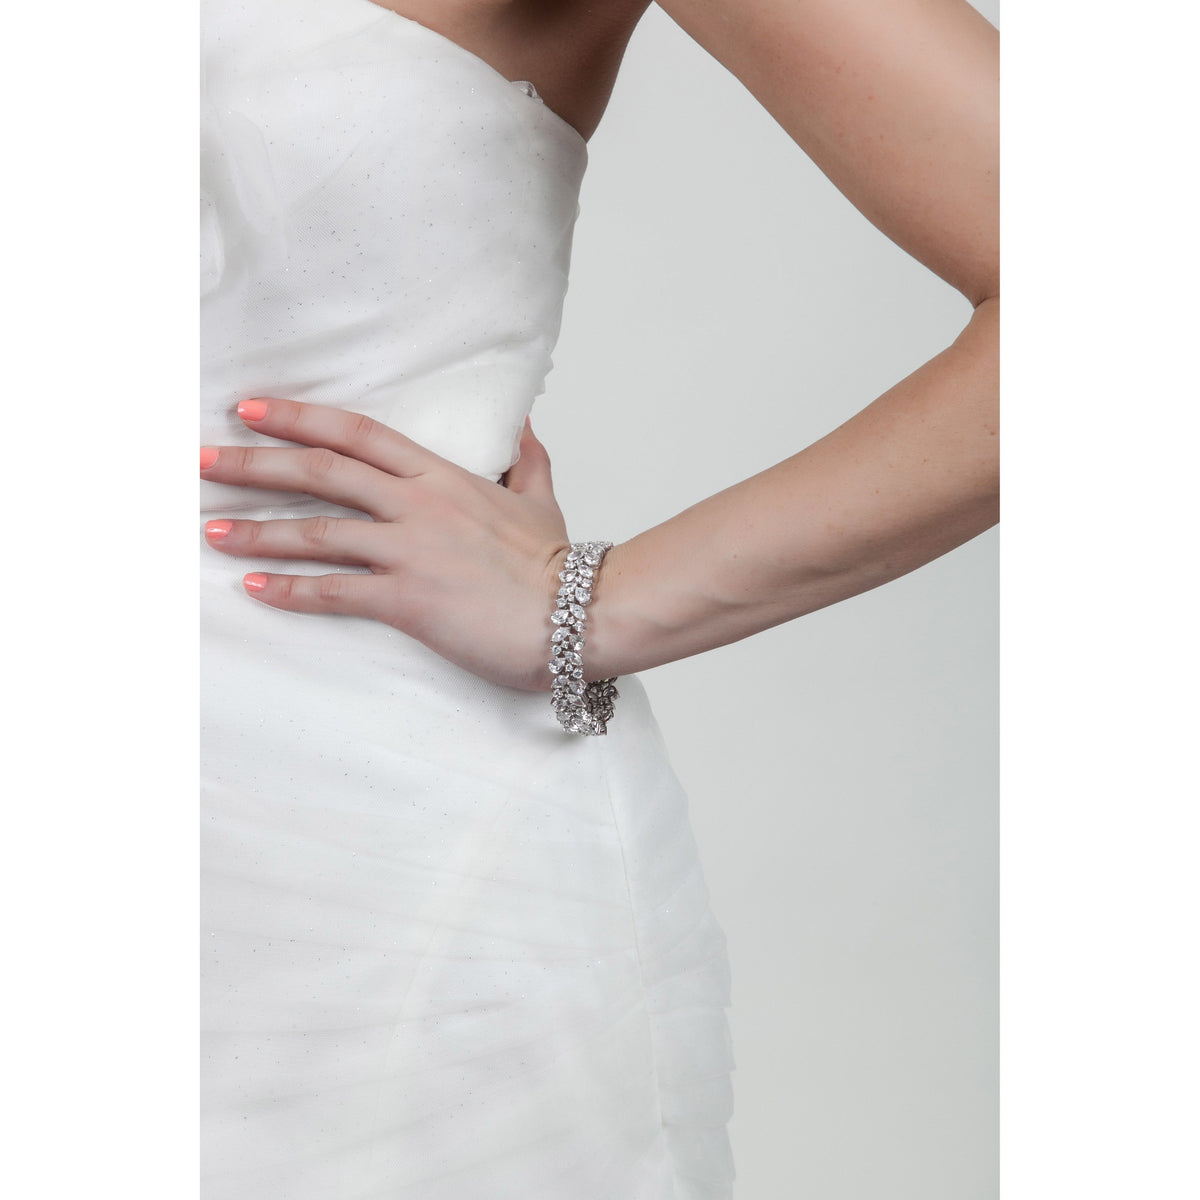 Rent Bridal Jewelry - Boucheron Bracelet - Happily Ever Borrowed